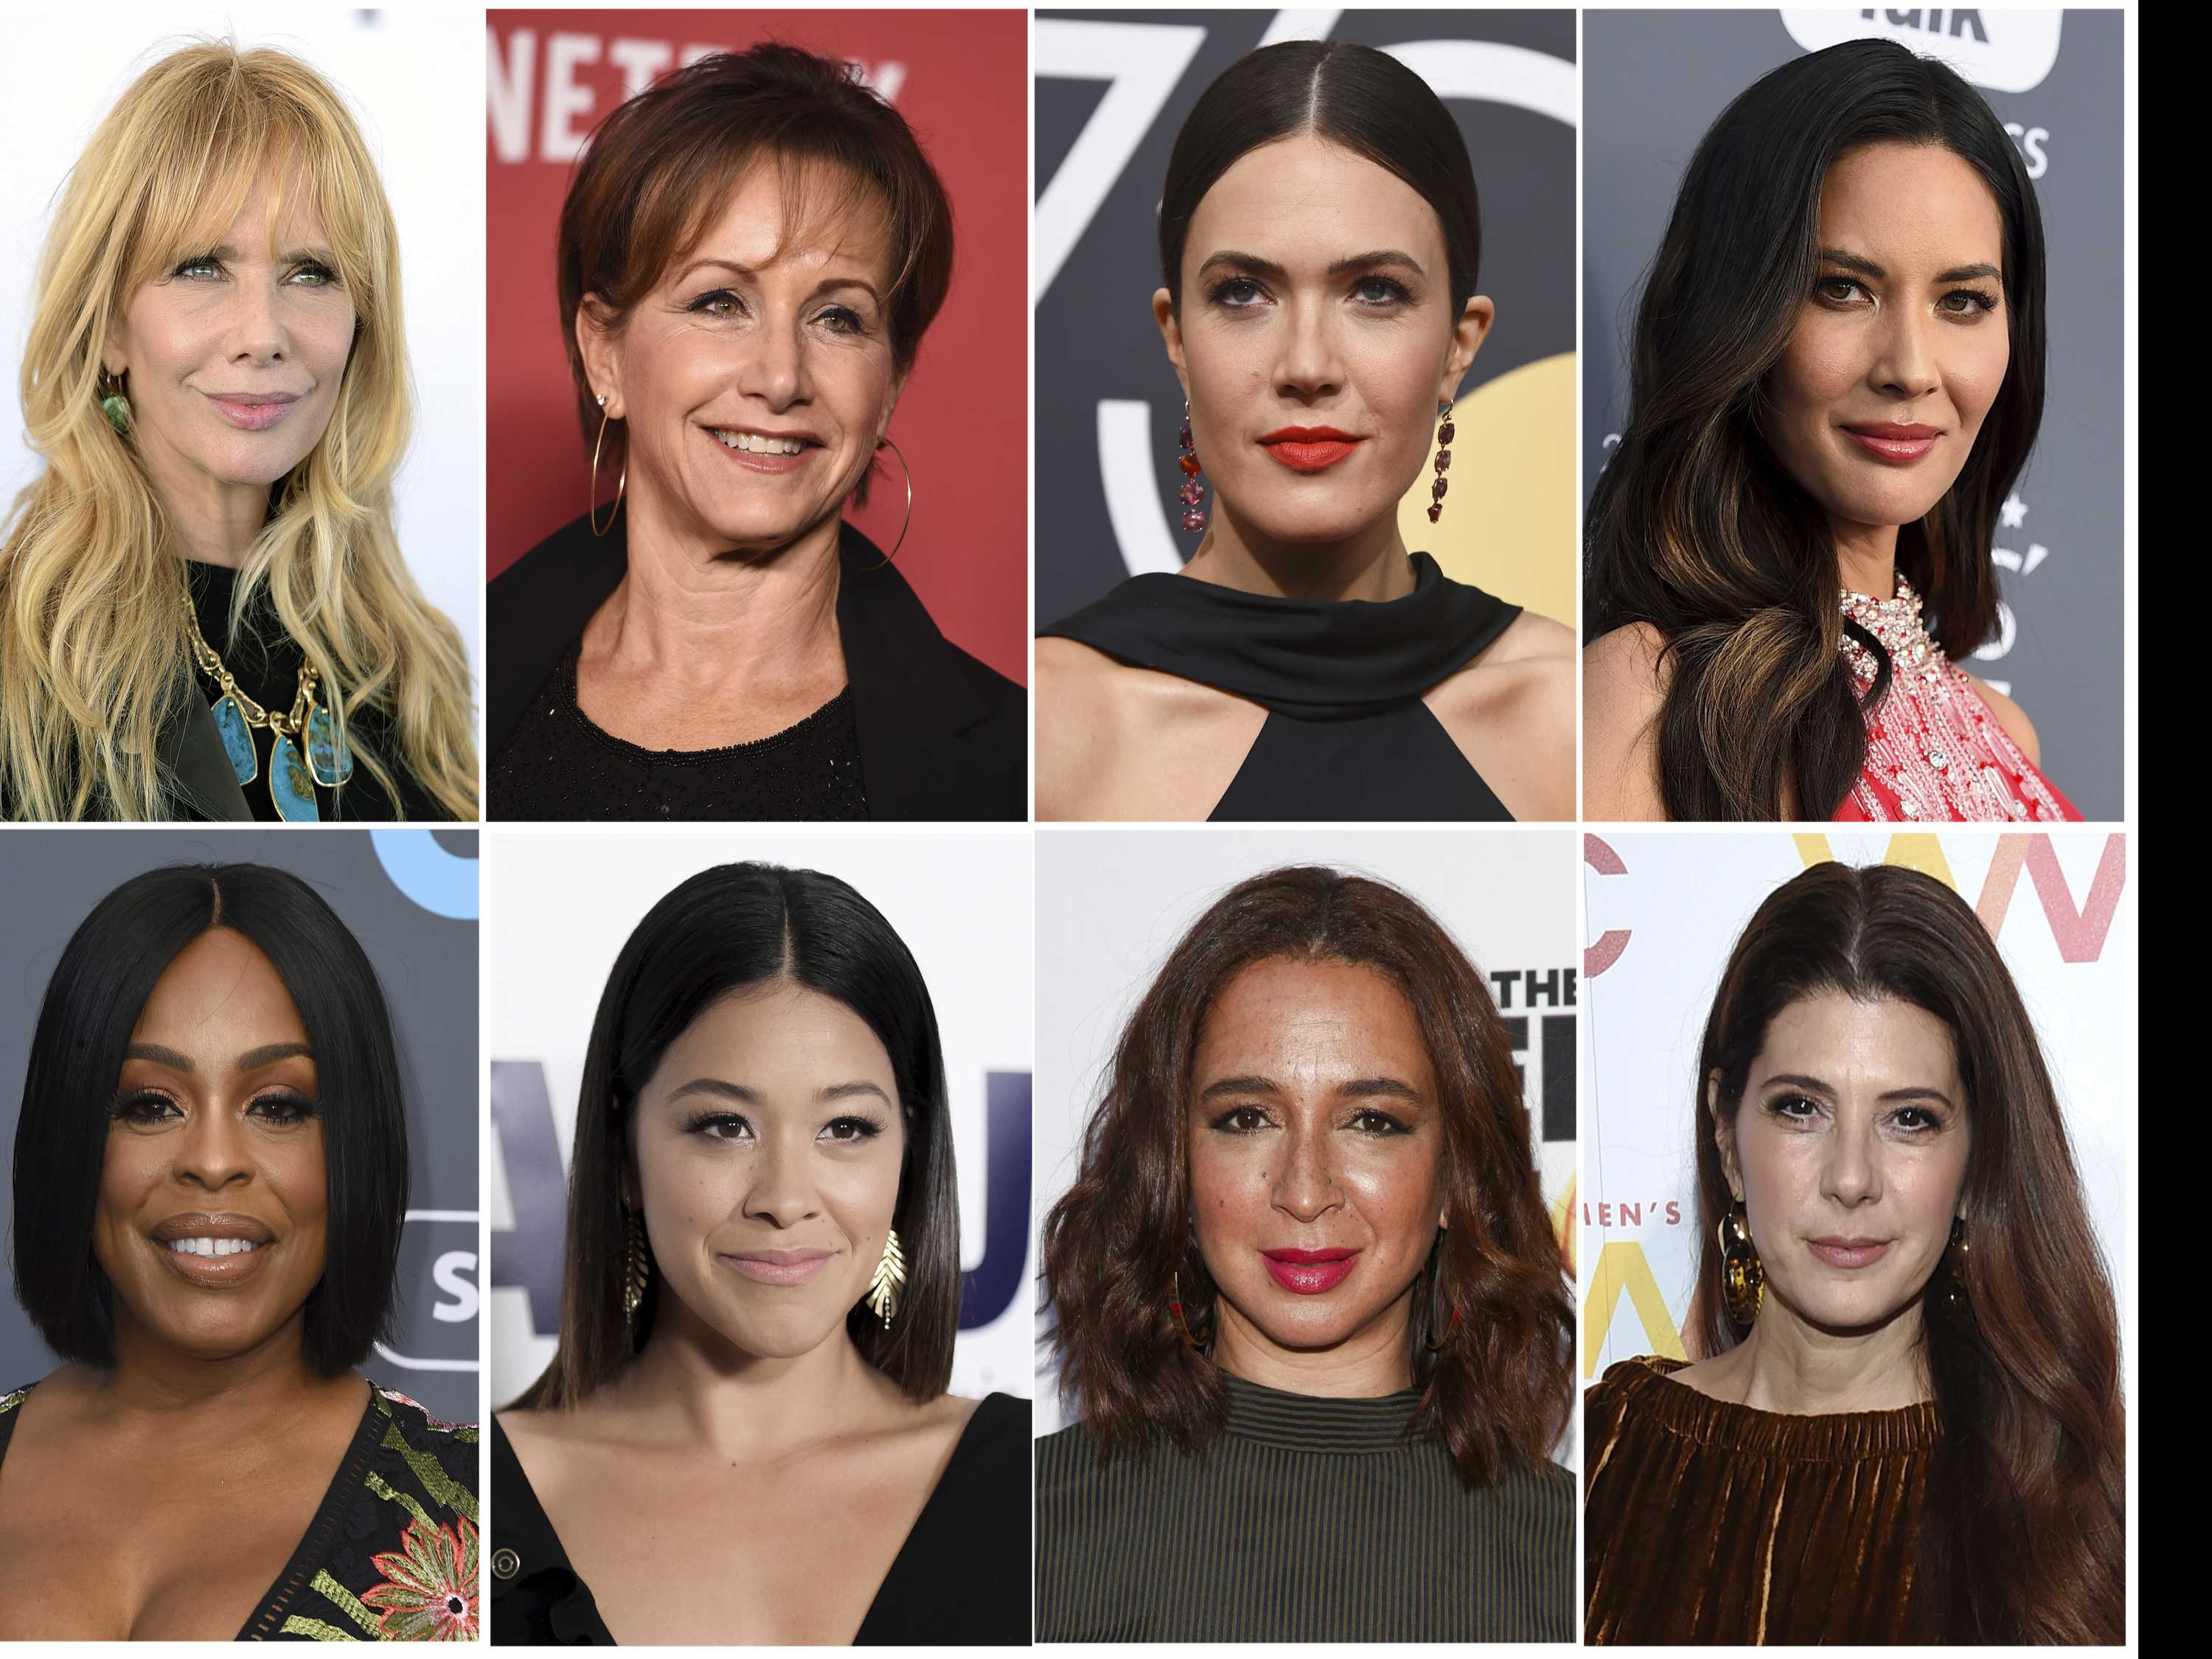 Spotlight to Focus on Women at 24th Annual SAG Awards